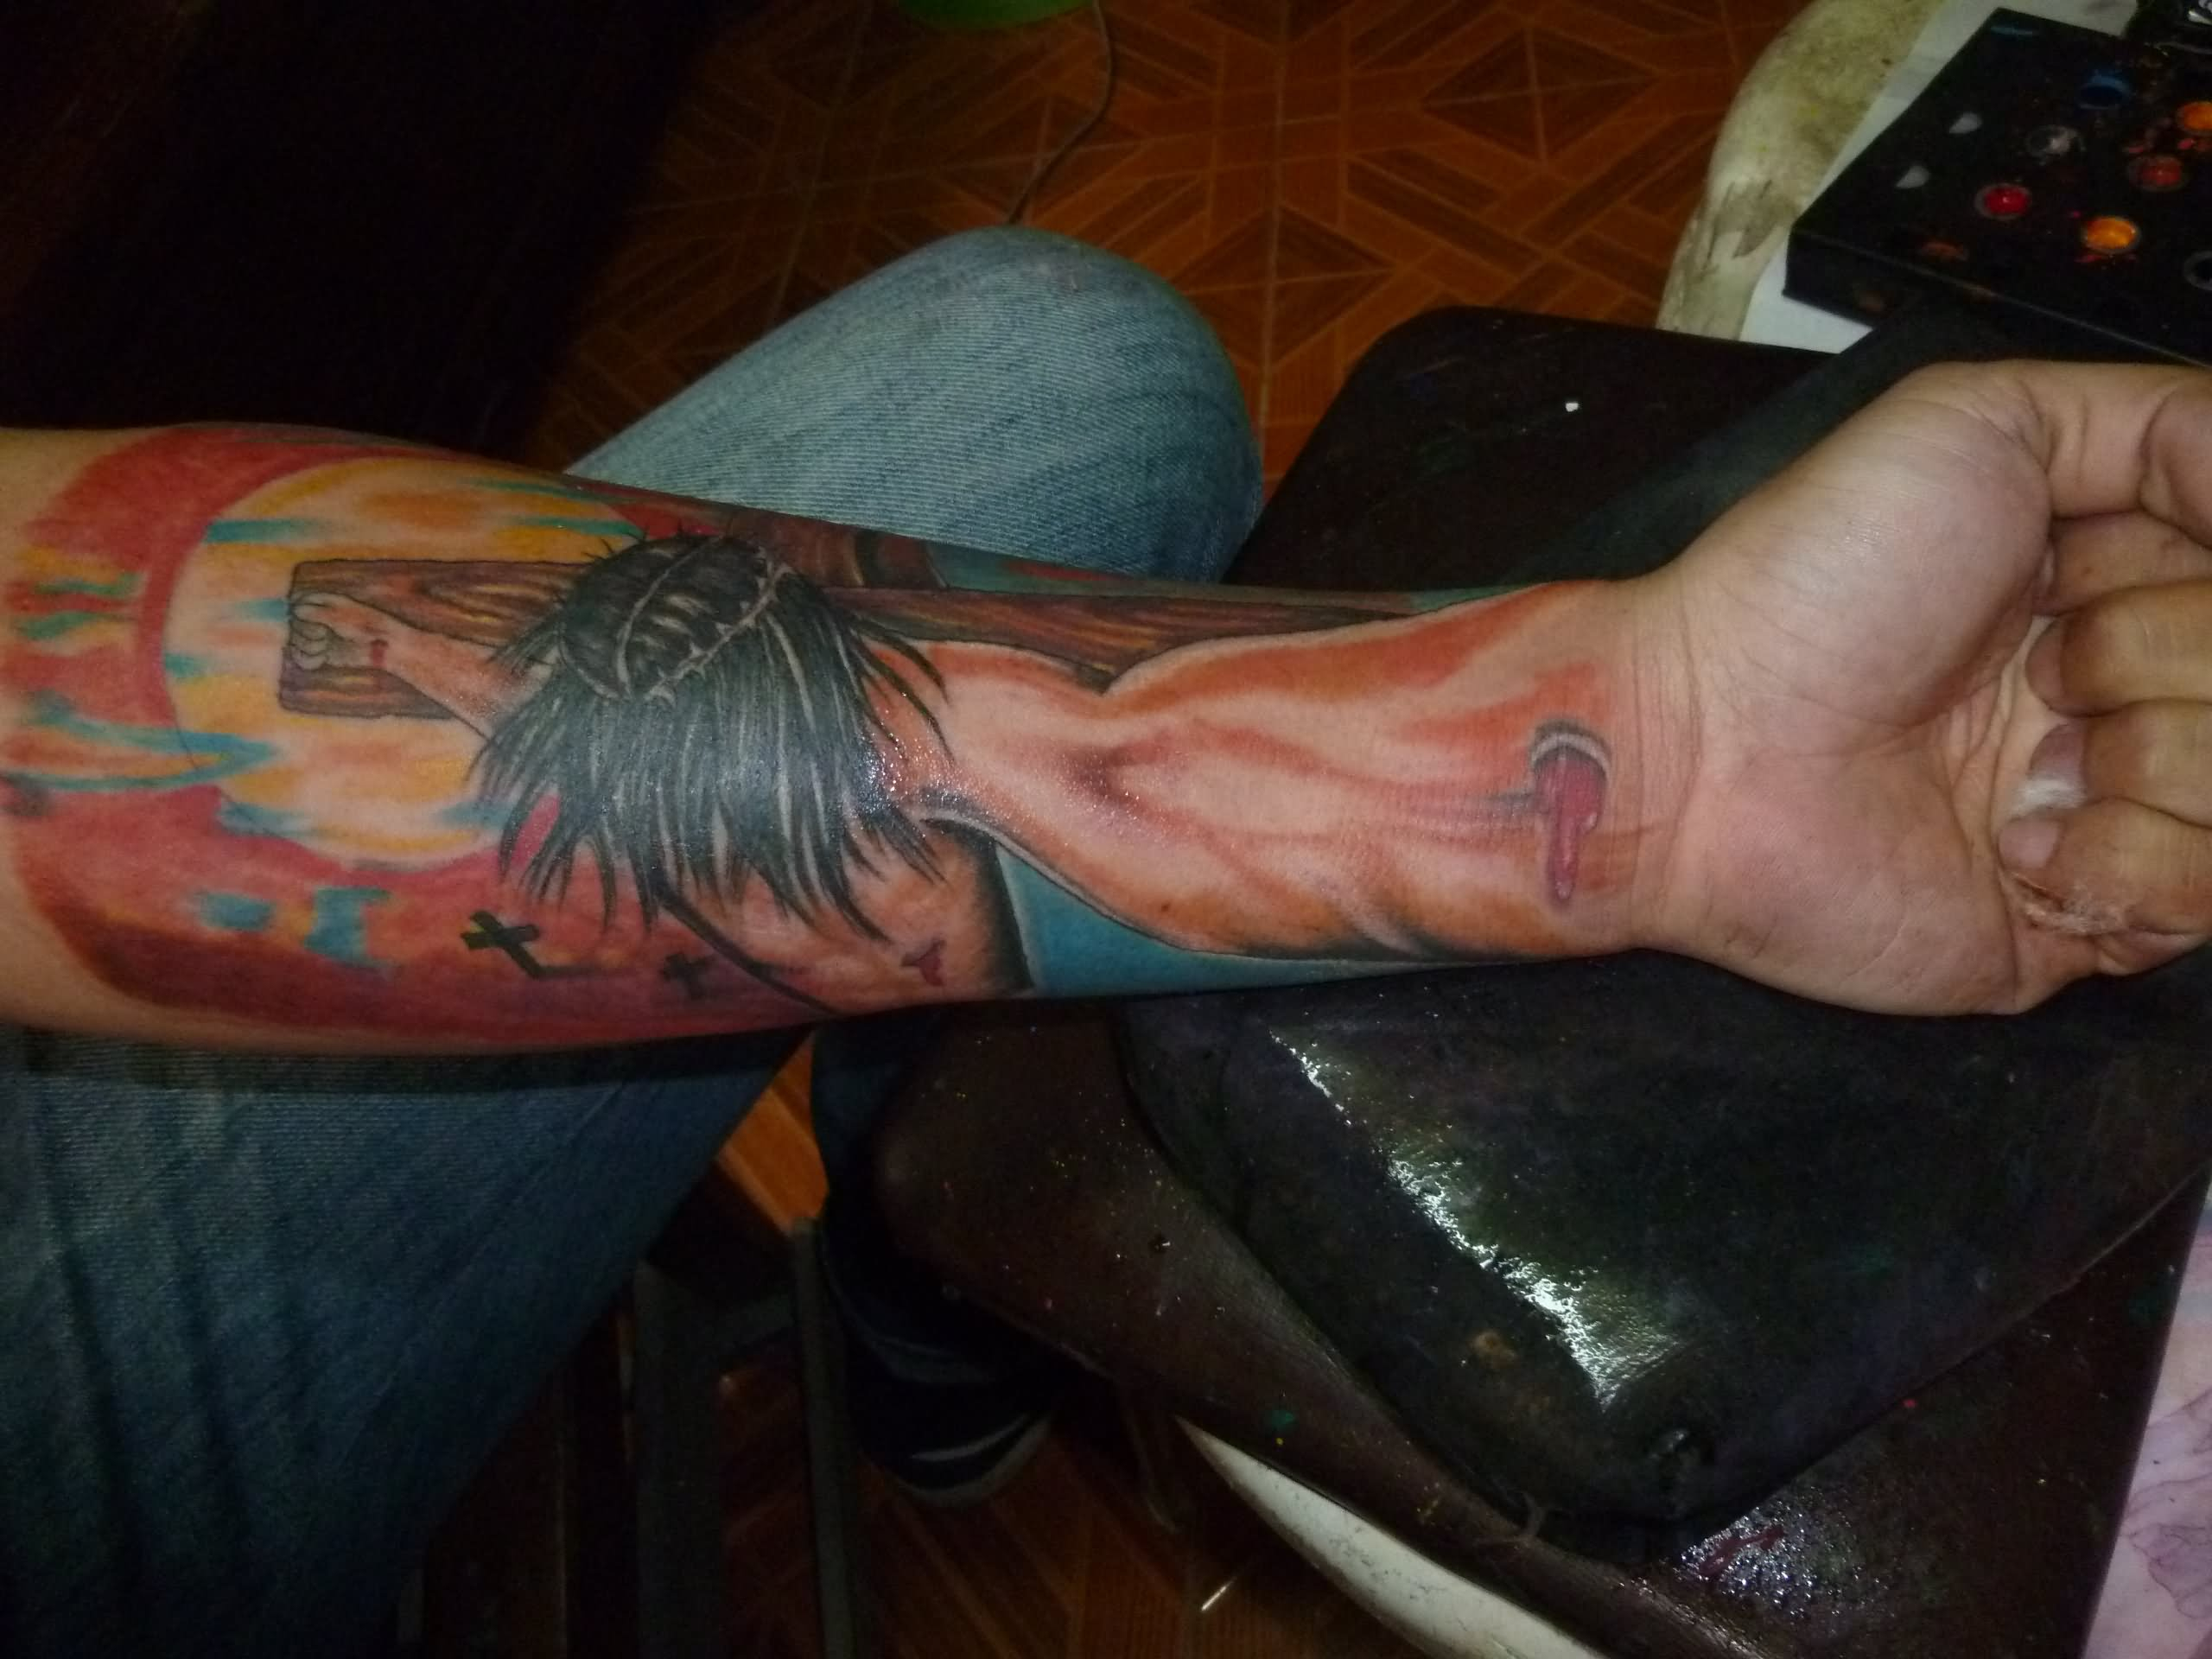 Jesus On Cross 3d Arm Tattoo Arm Tattoo Sites